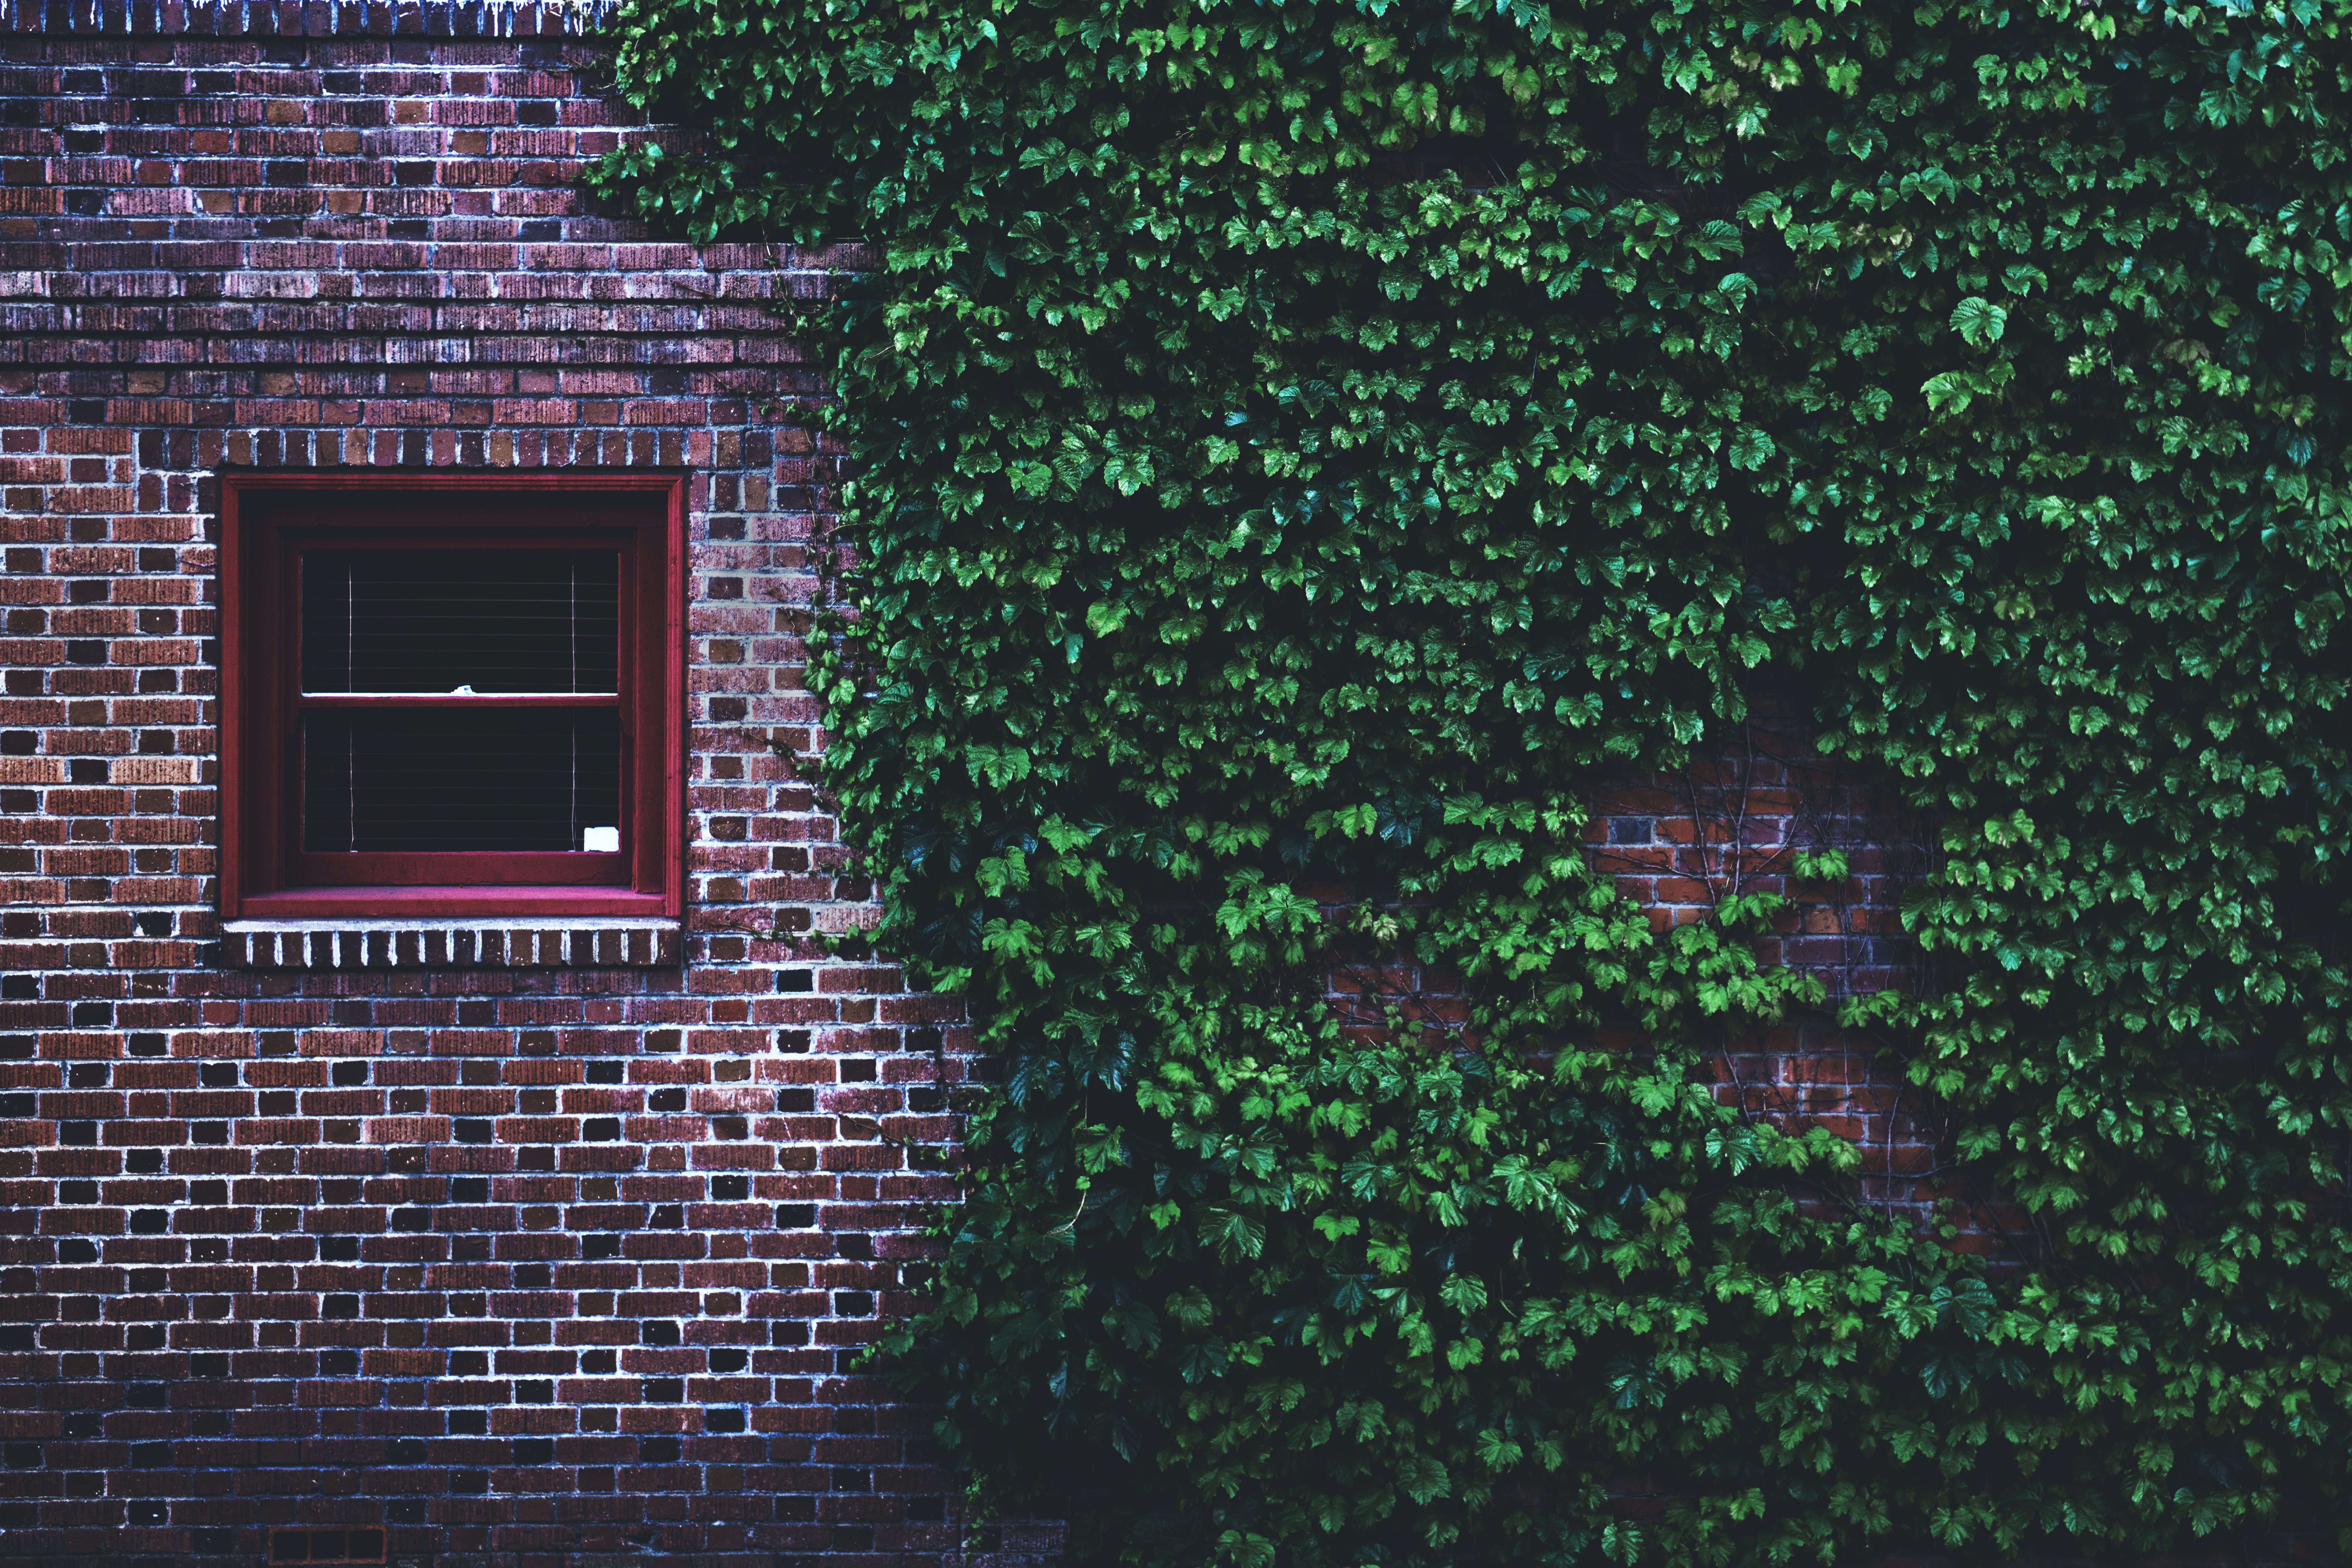 Brown Concrete Brick House Covered by Green Leaf Vines